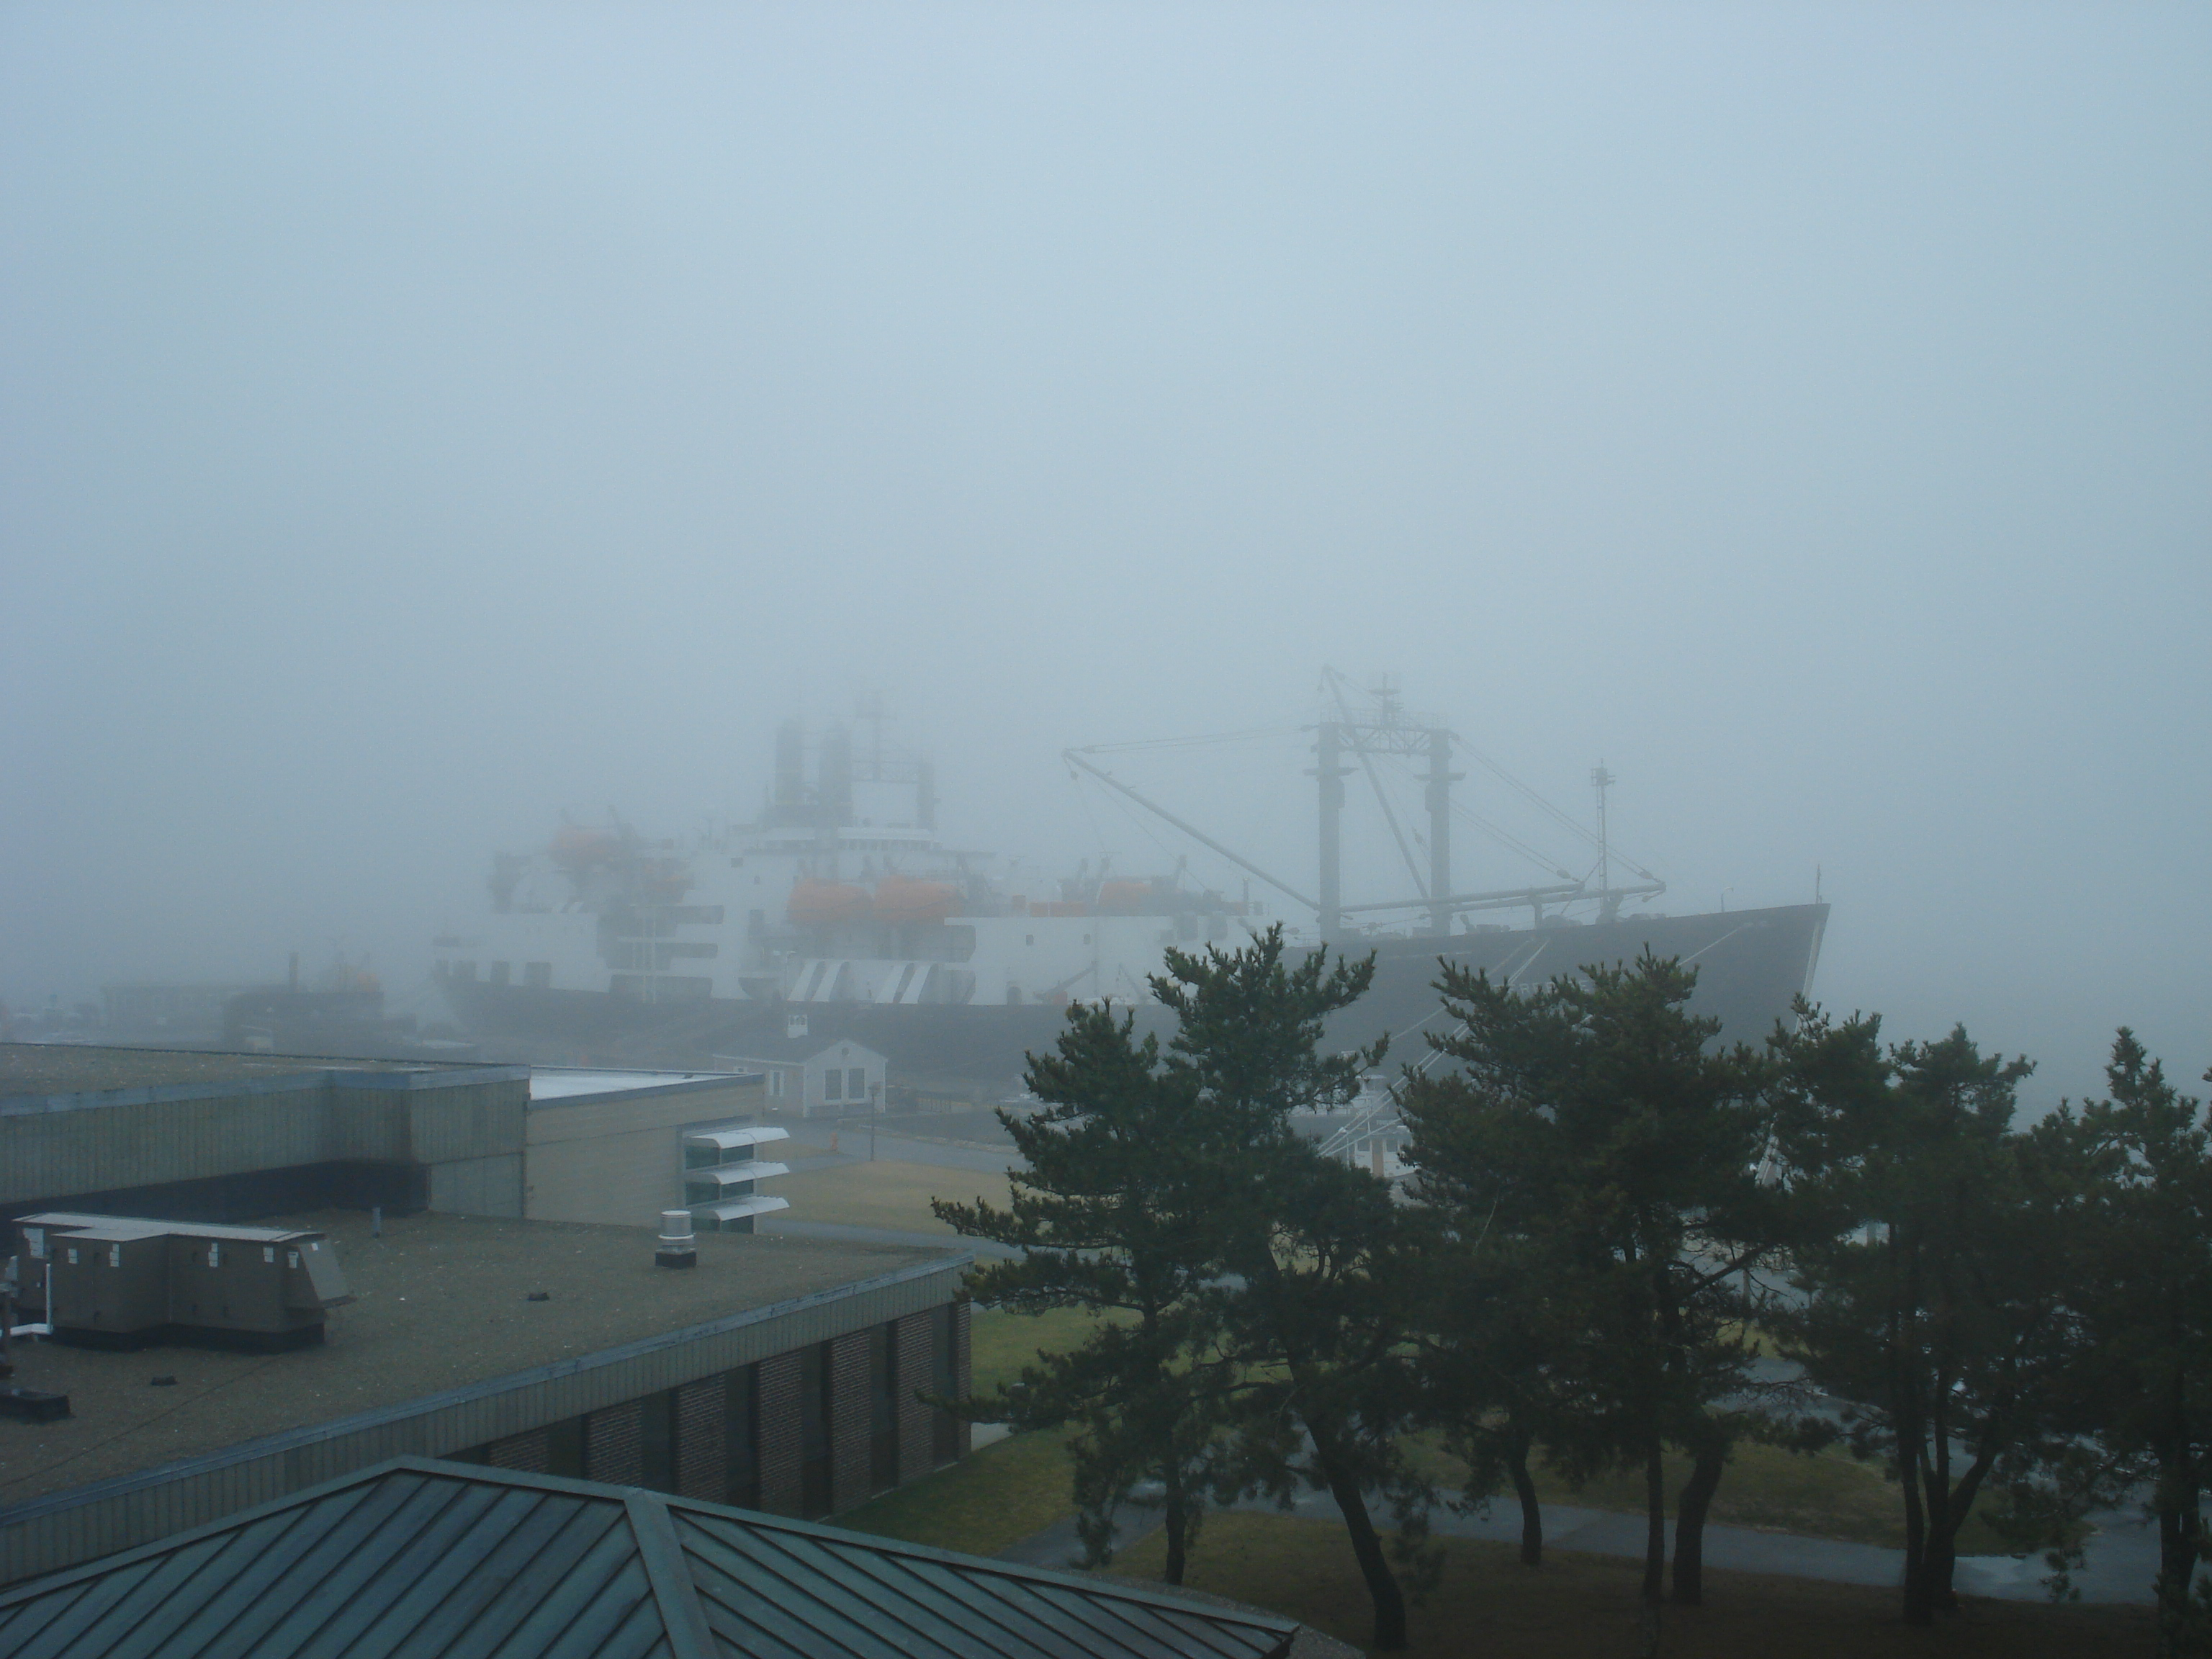 T.S. Enterprise in the fog